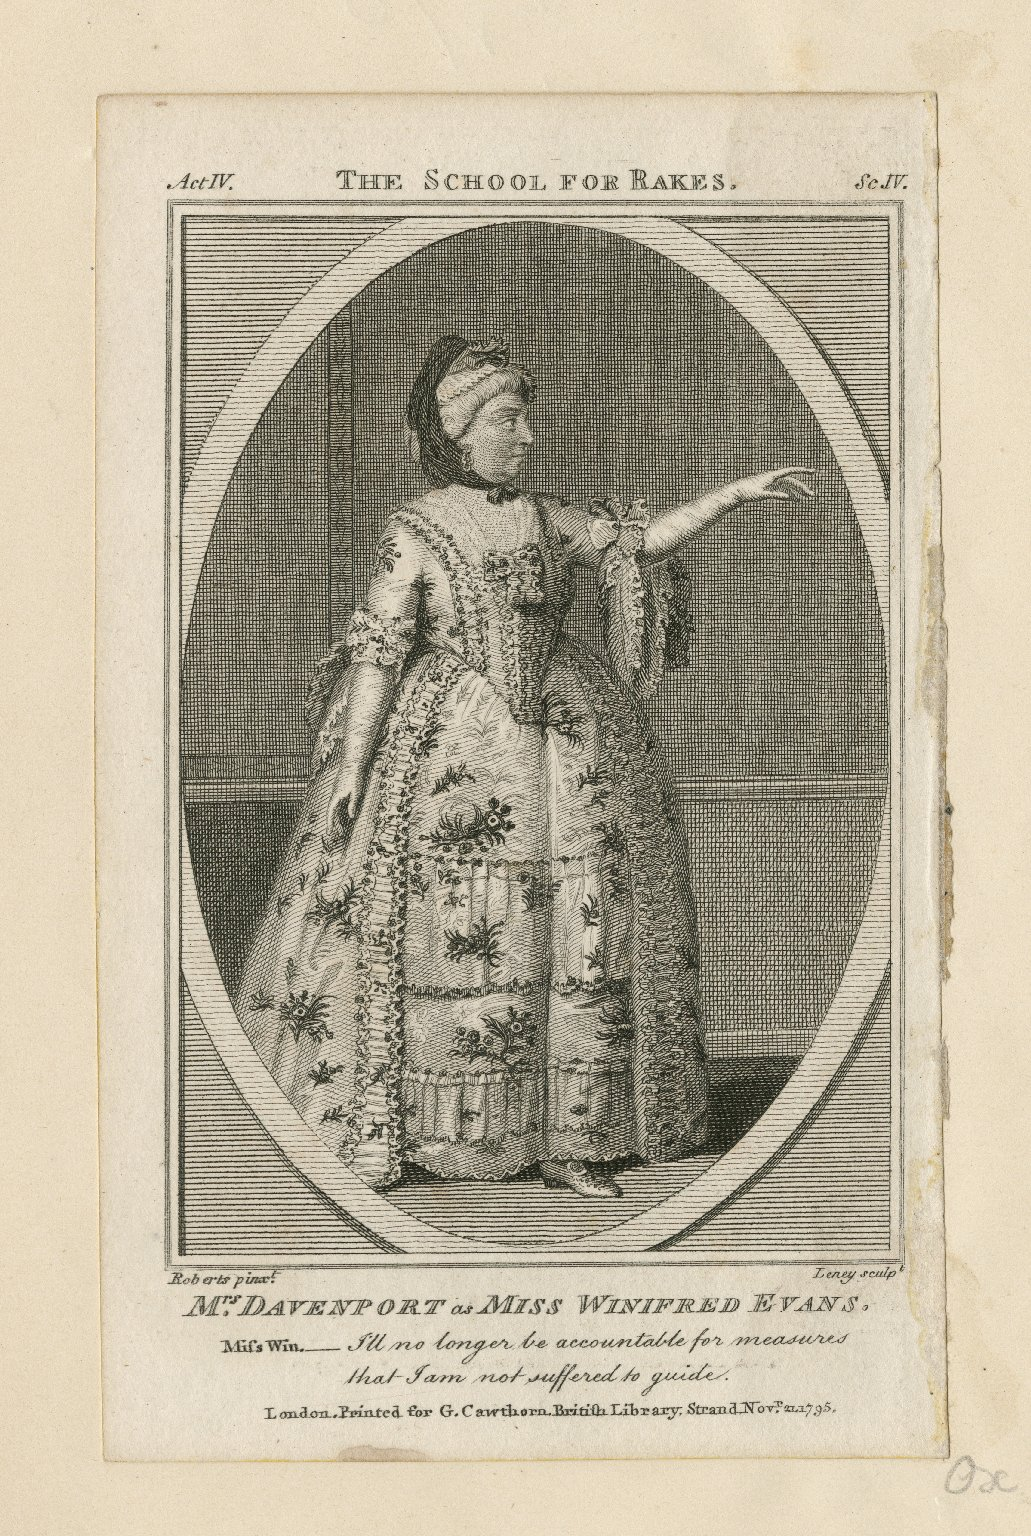 Mrs. Davenport as Miss Winifred Evans [in Griffith's School for rakes] [graphic] / Roberts, pinxt. ; Leney, sculpt.